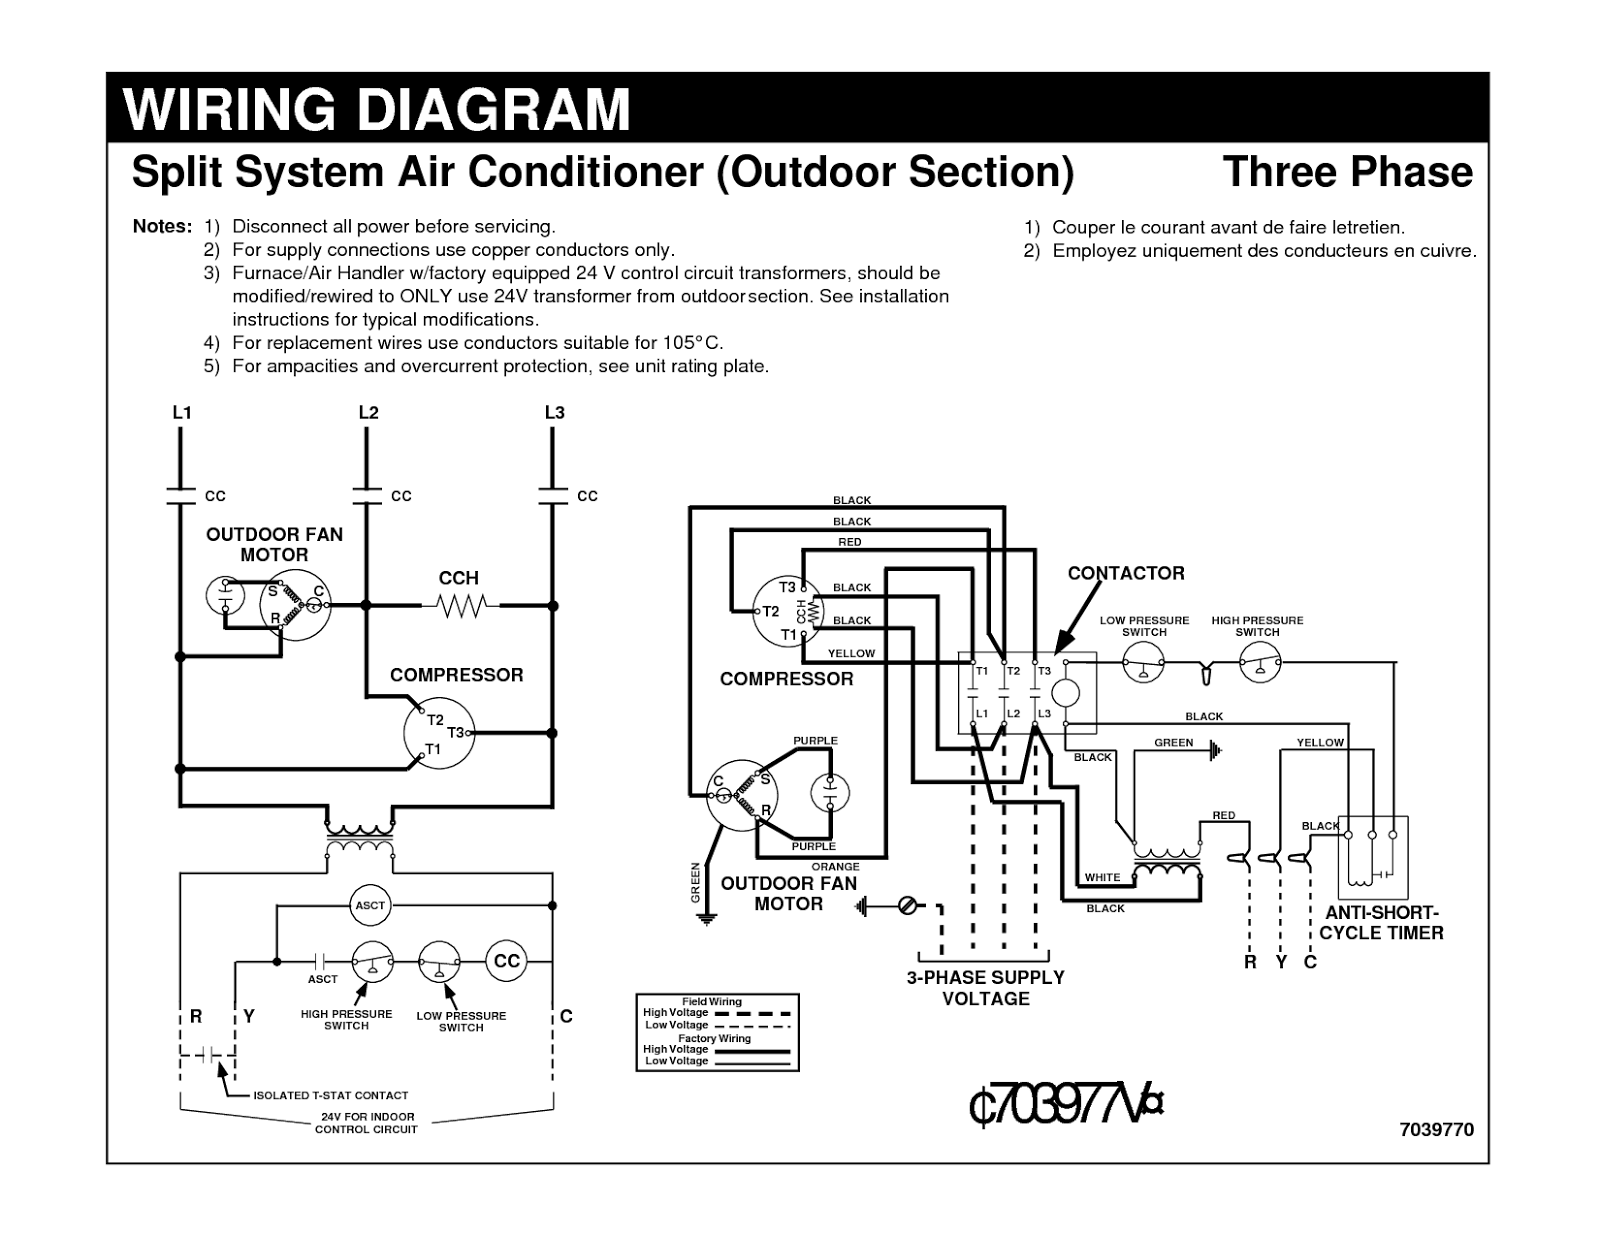 air conditioner compressor wiring diagram for1972 chevelle medallion air conditioner compressor wiring diagrams #2